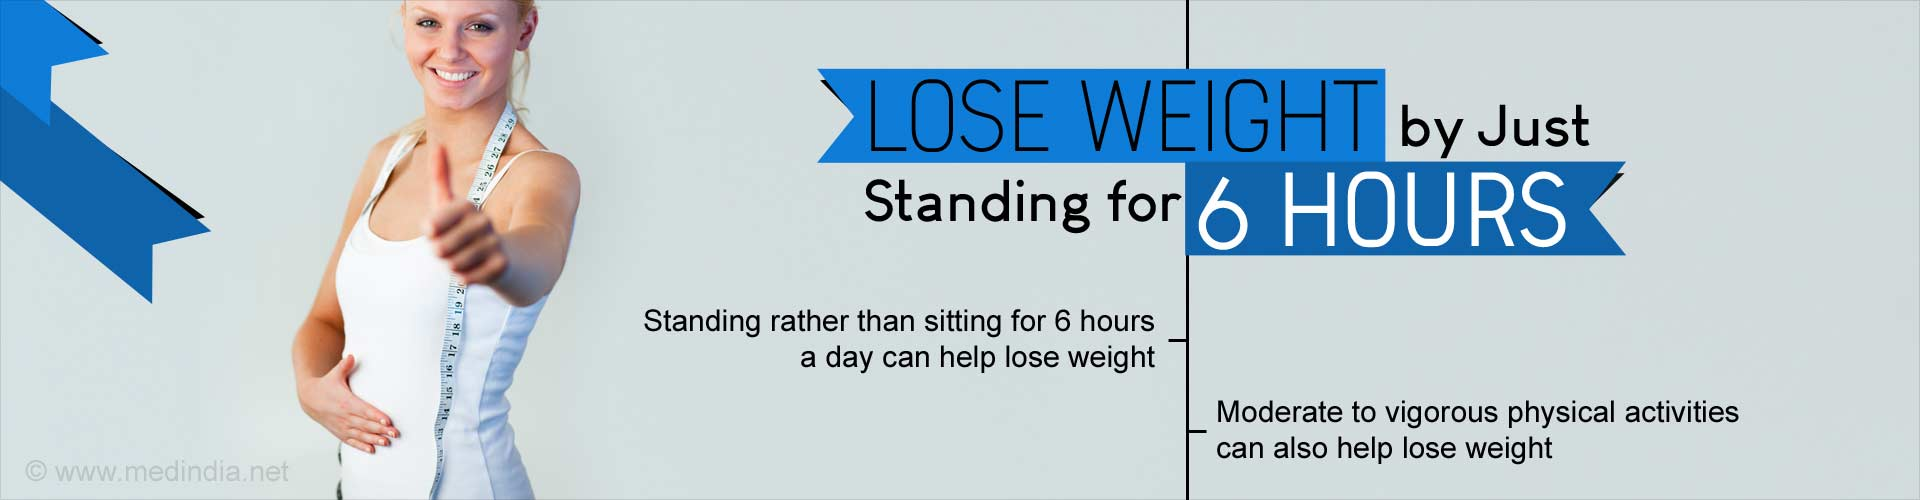 lose weight by just standing for 6 hours